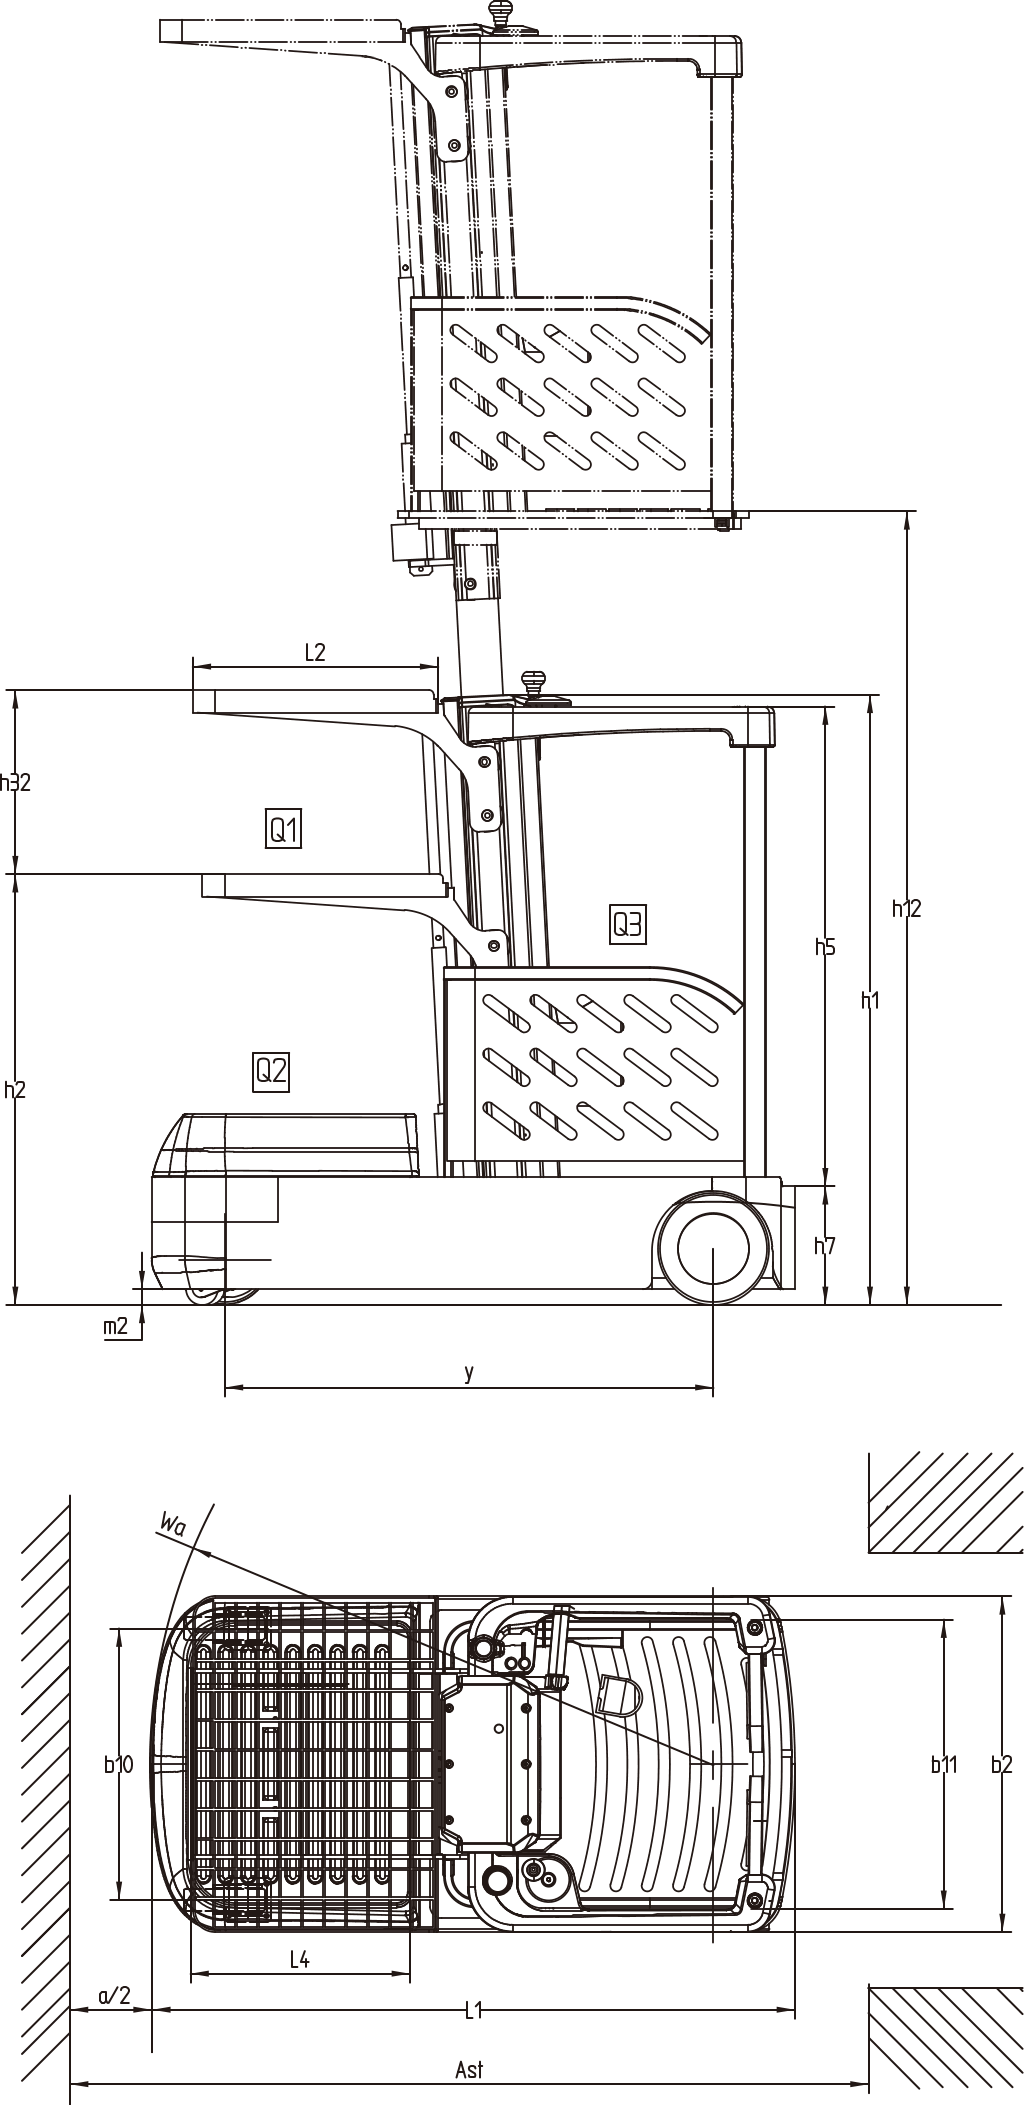 JX0 isometric view and dimensions